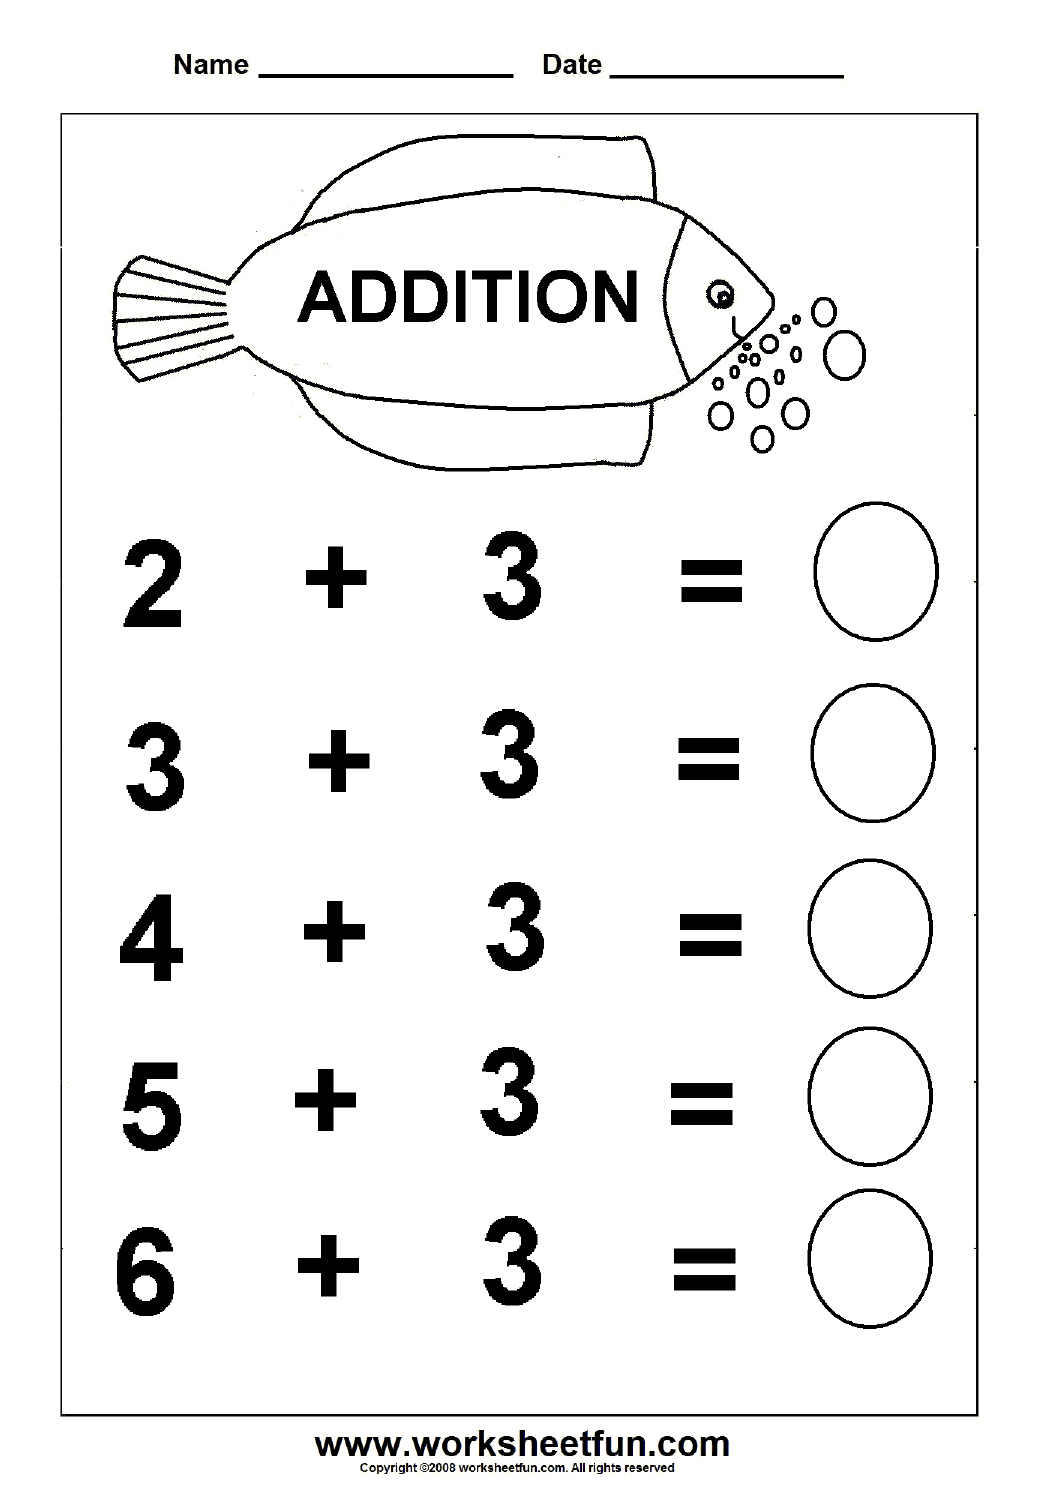 Worksheets Beginner Math Worksheets worksheet 604780 math worksheets for kindergarten printable free addition 1000 images printable